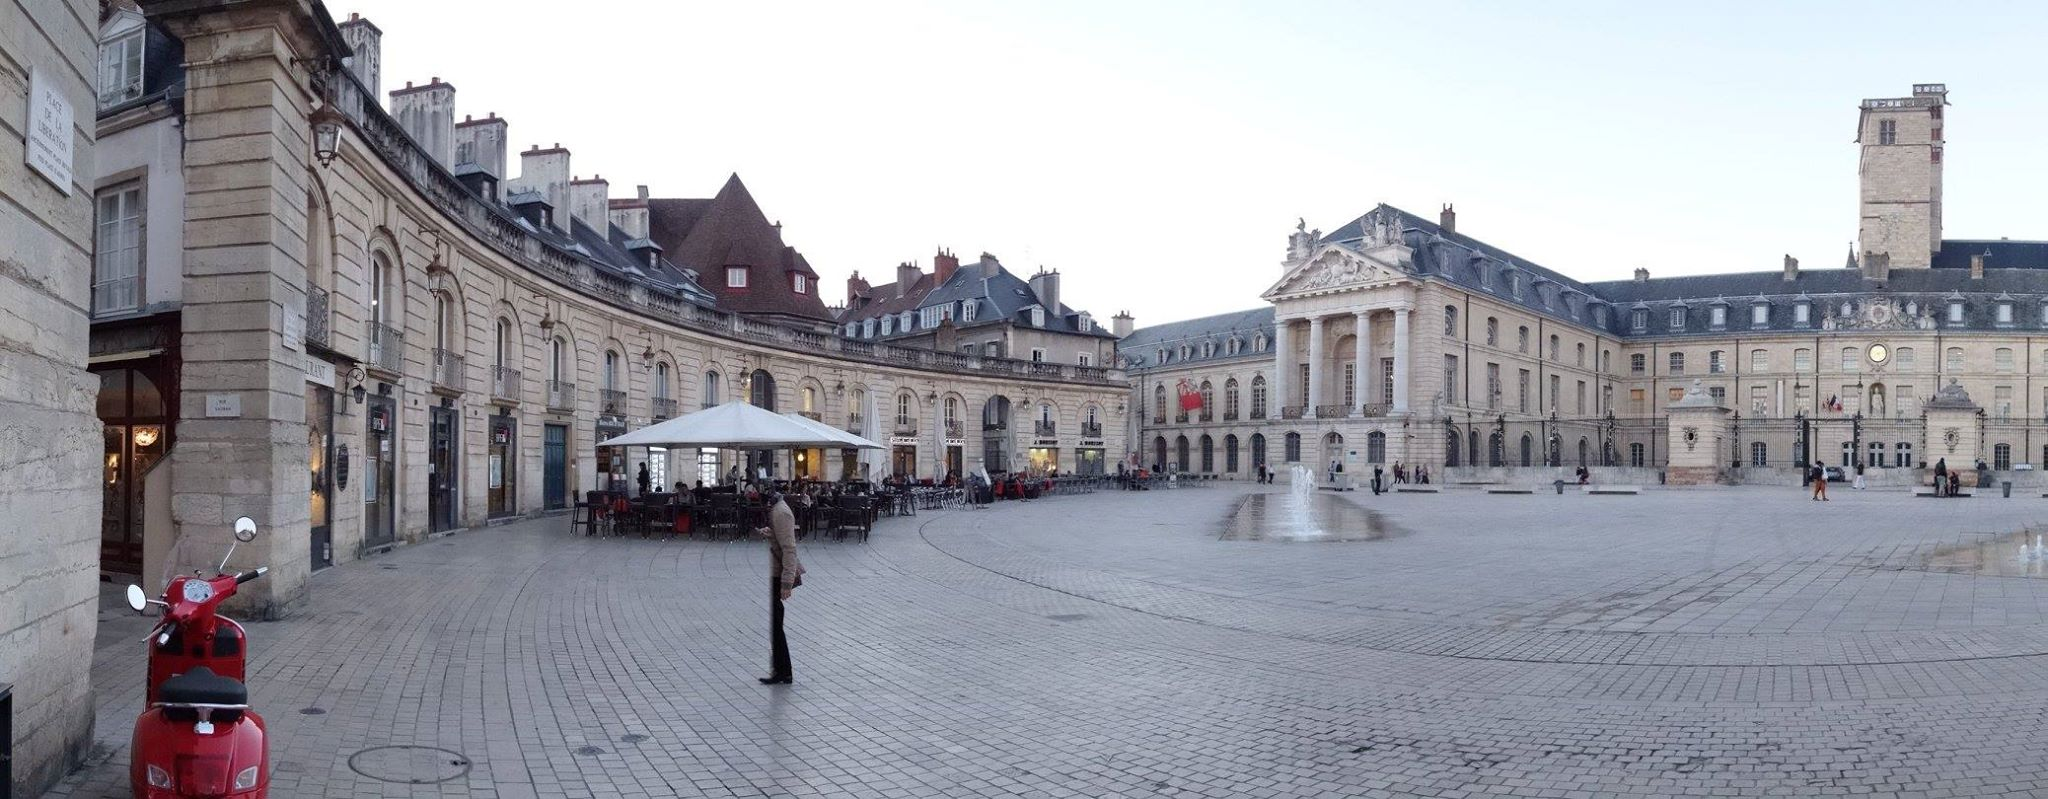 The Liberation Square and the Palace of the Dukes of Burgundy